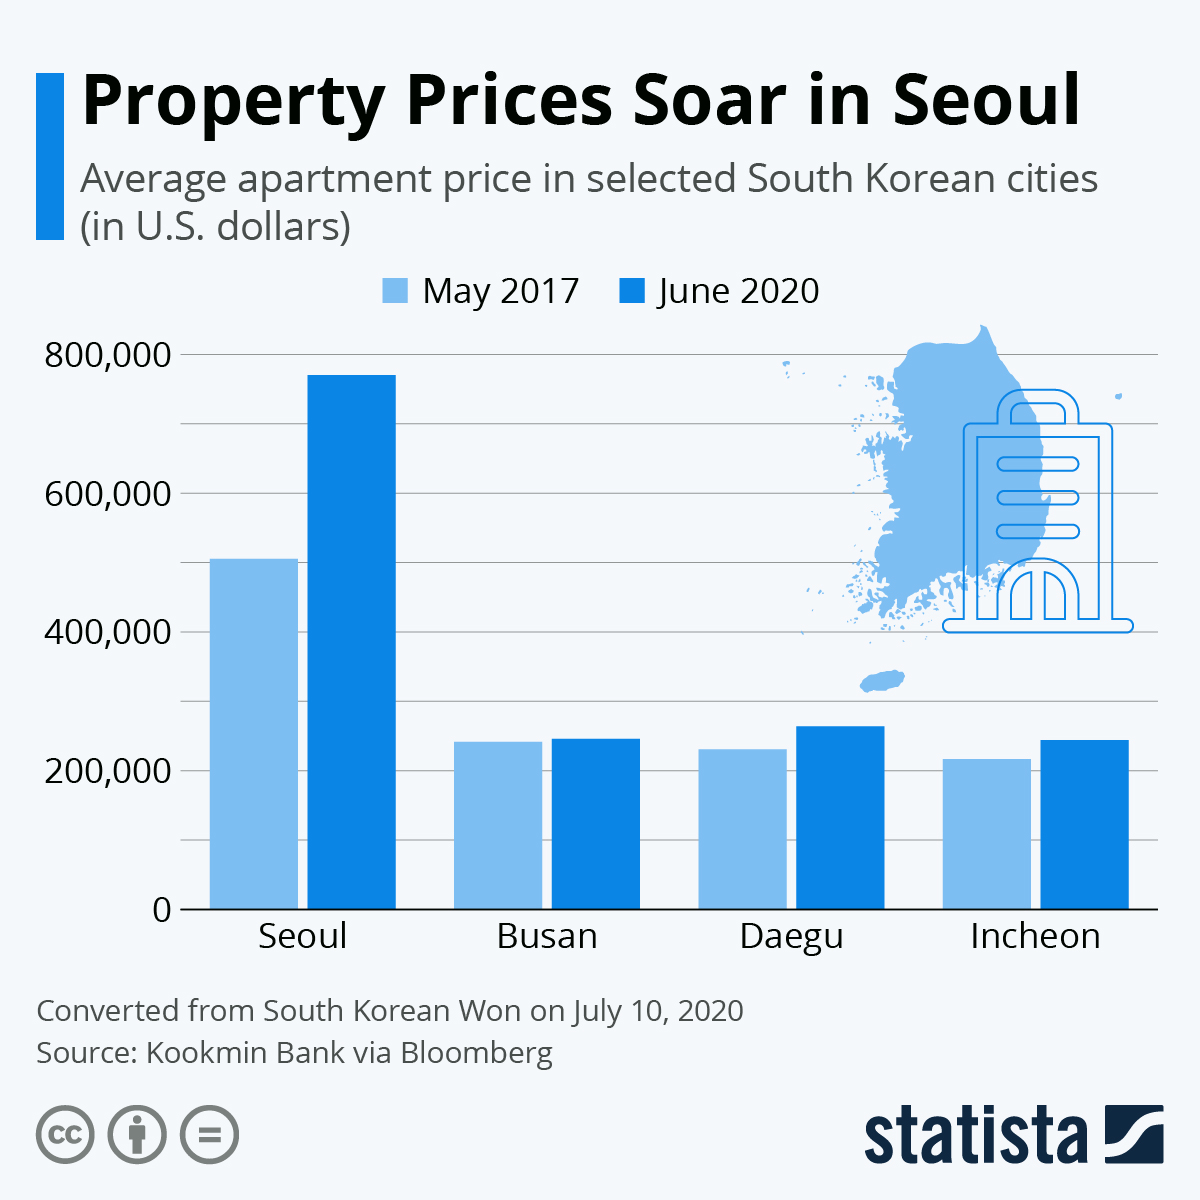 Property Prices Soar in Seoul #infographic